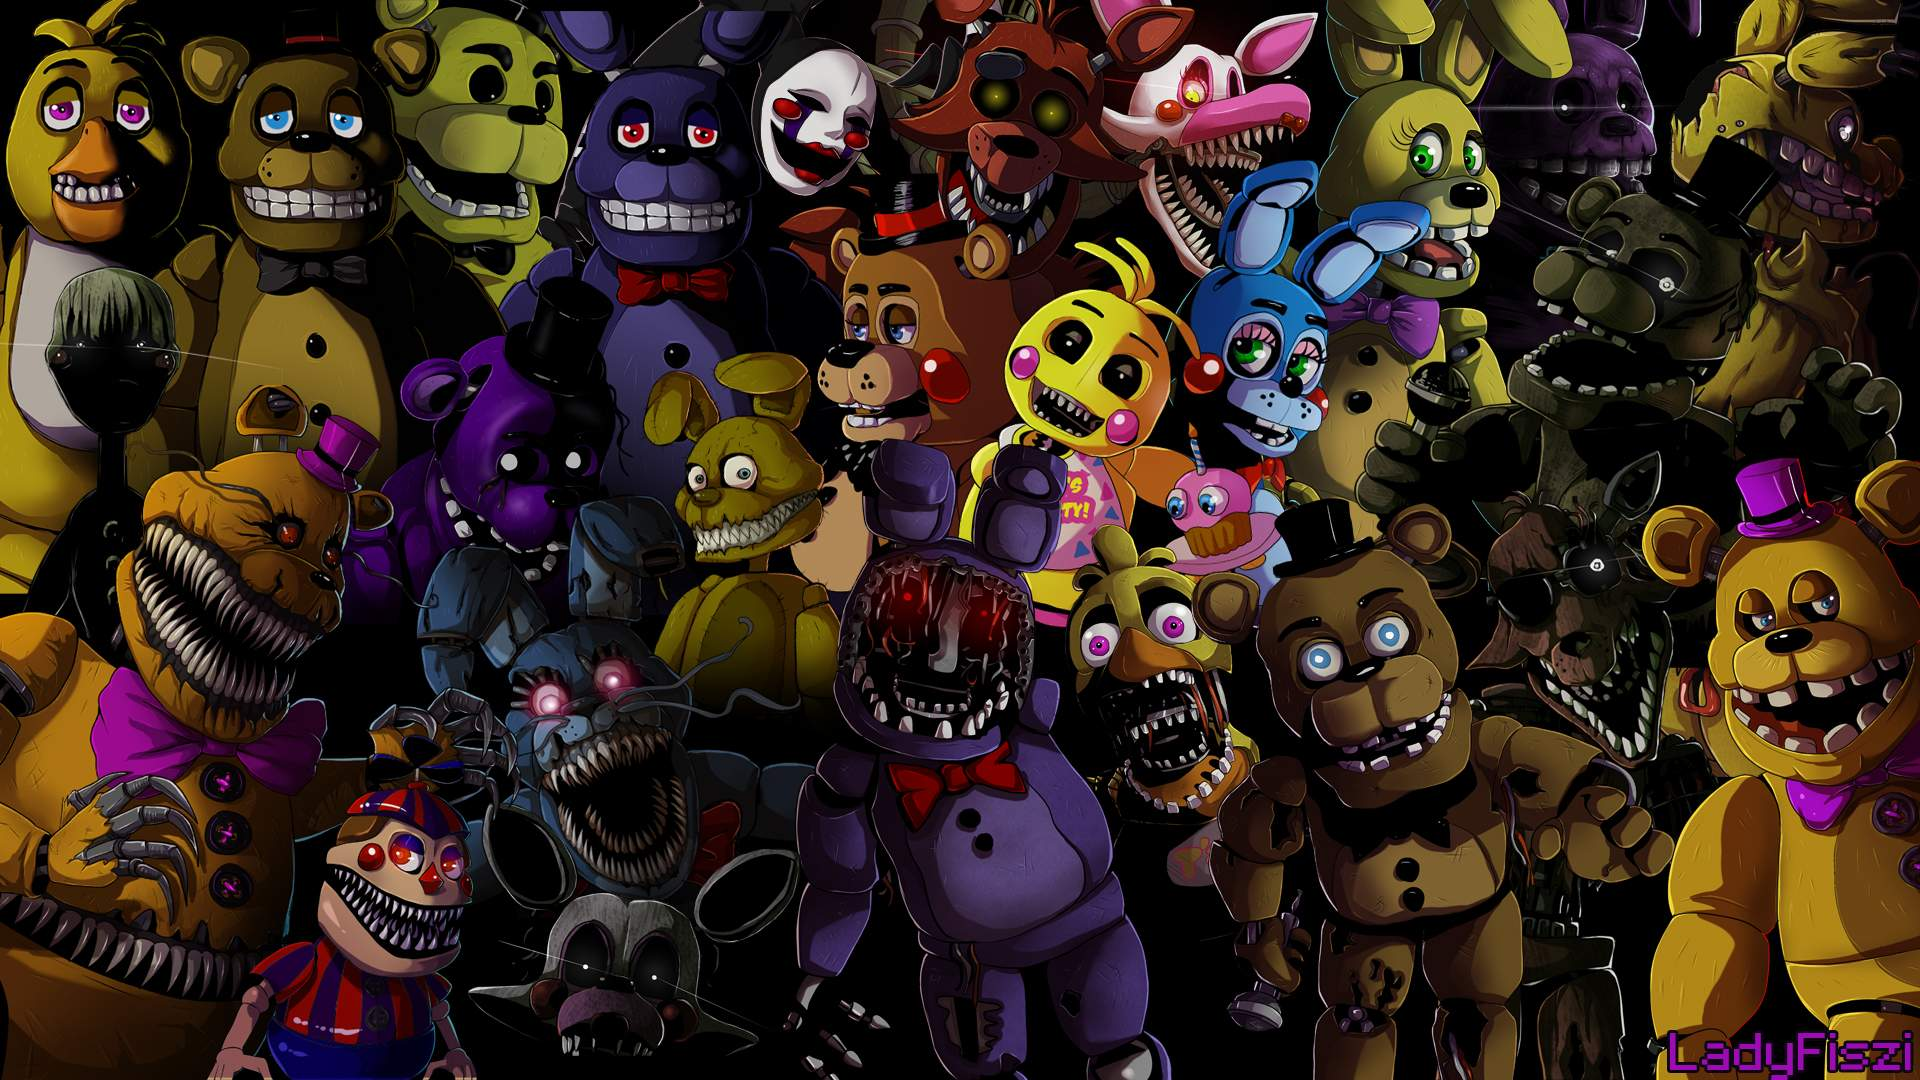 FNAF THE FINAL NIGHT